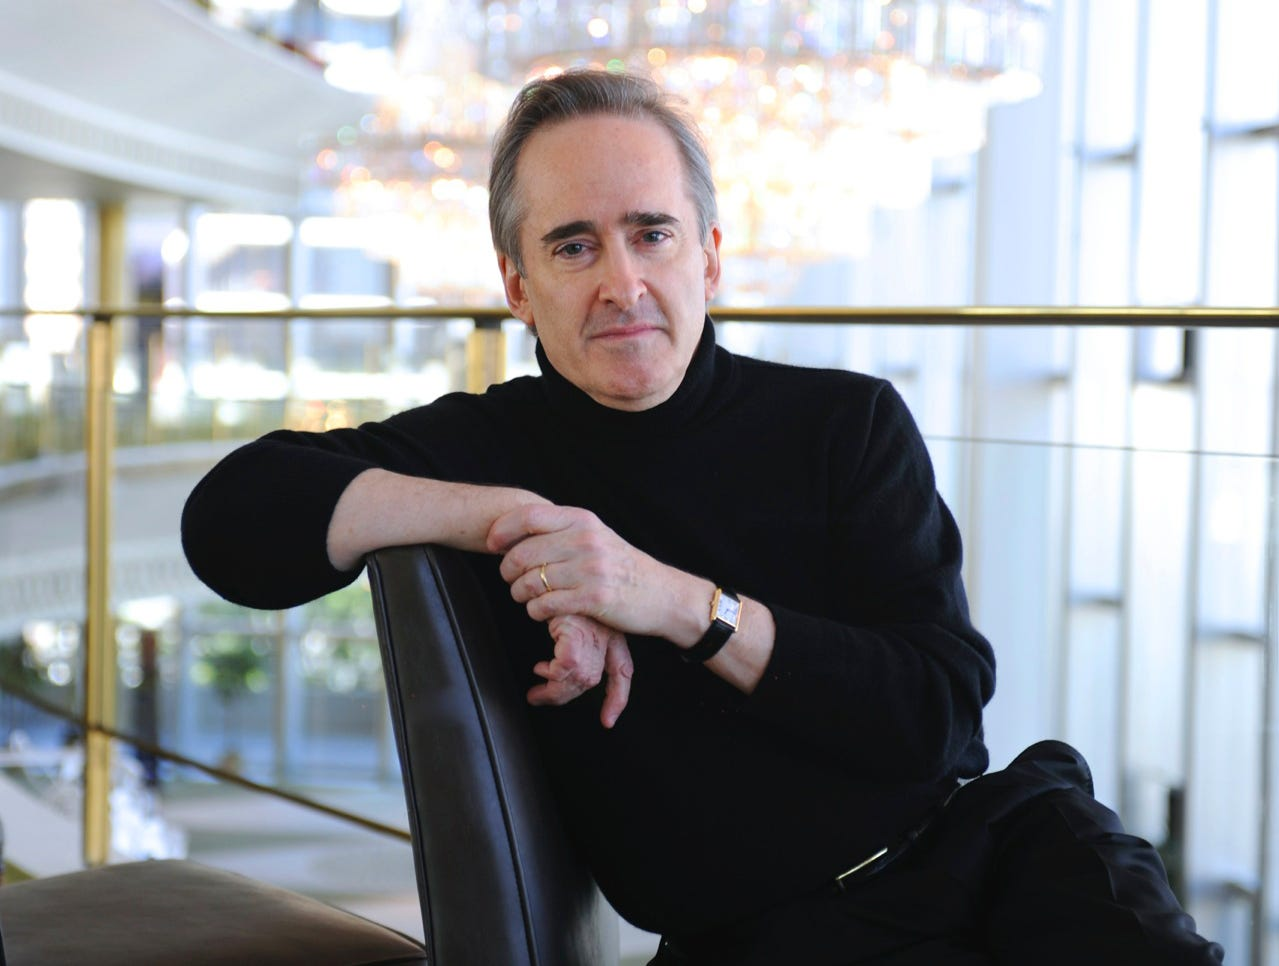 Conductor James Conlon was music director of the May Festival for a remarkable 37 years. He will return to Cincinnati as a guest conductor of the CSO during the 2019-2020 season.